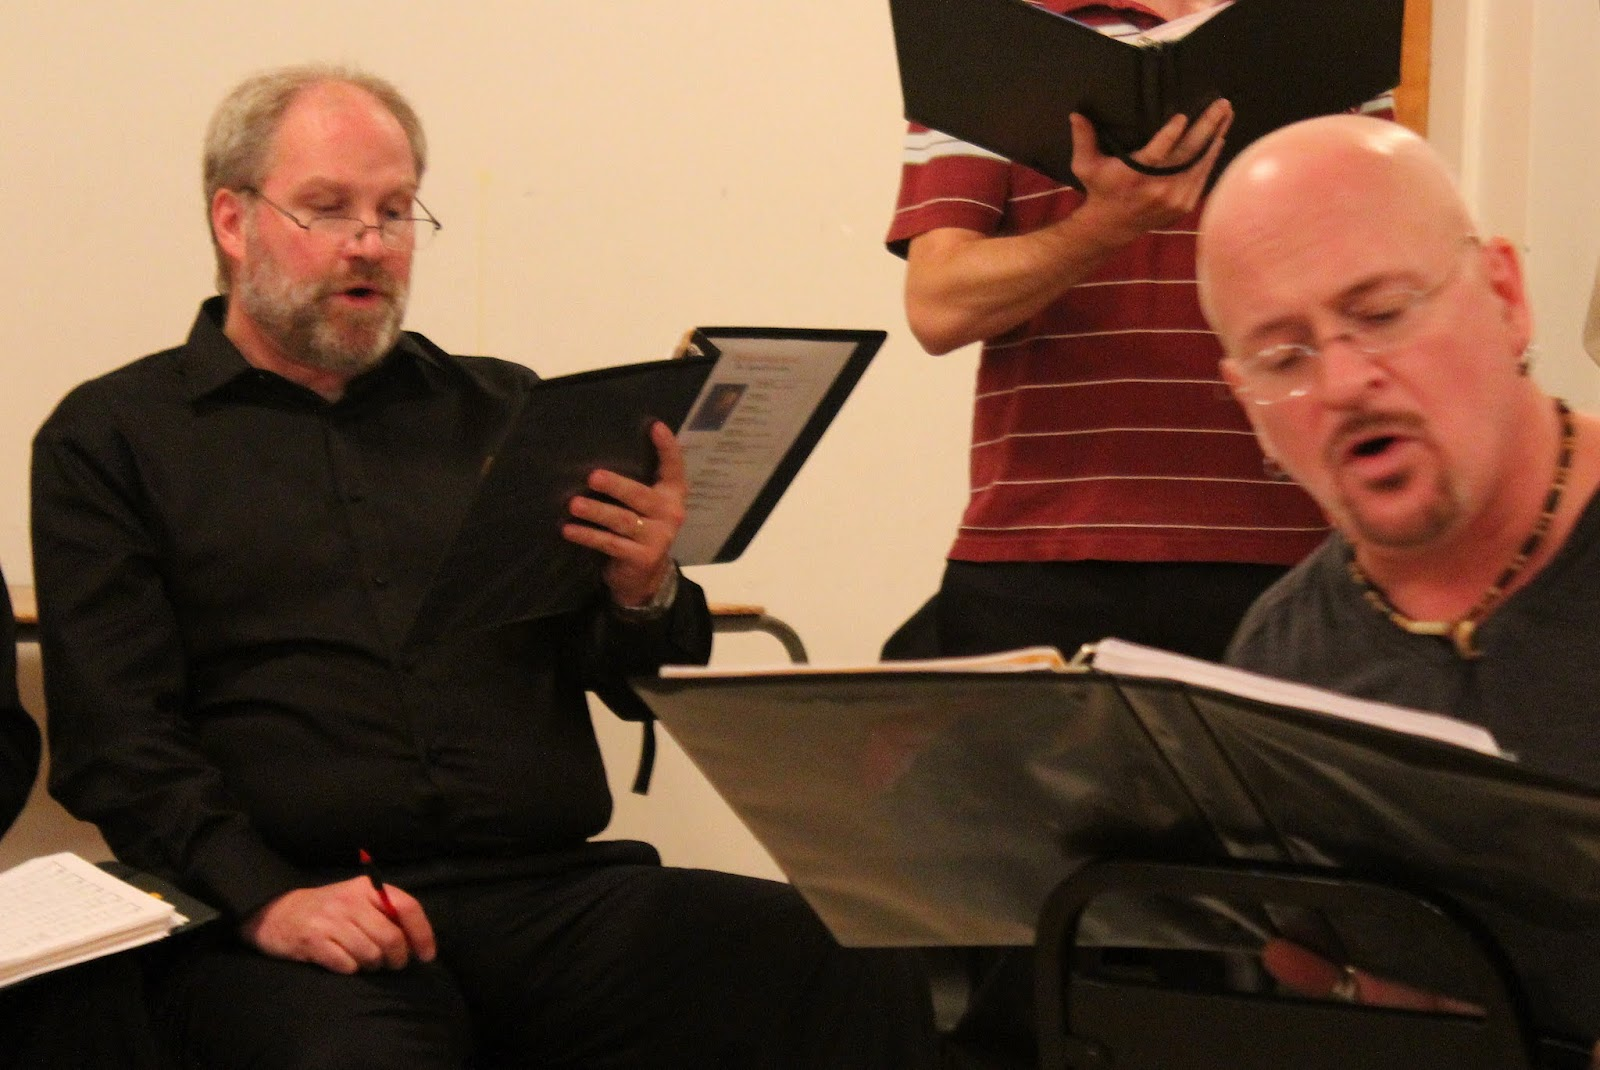 David, at left, pen at the ready, works hard at rehearsal -- while Pierre directs from the center of the circle